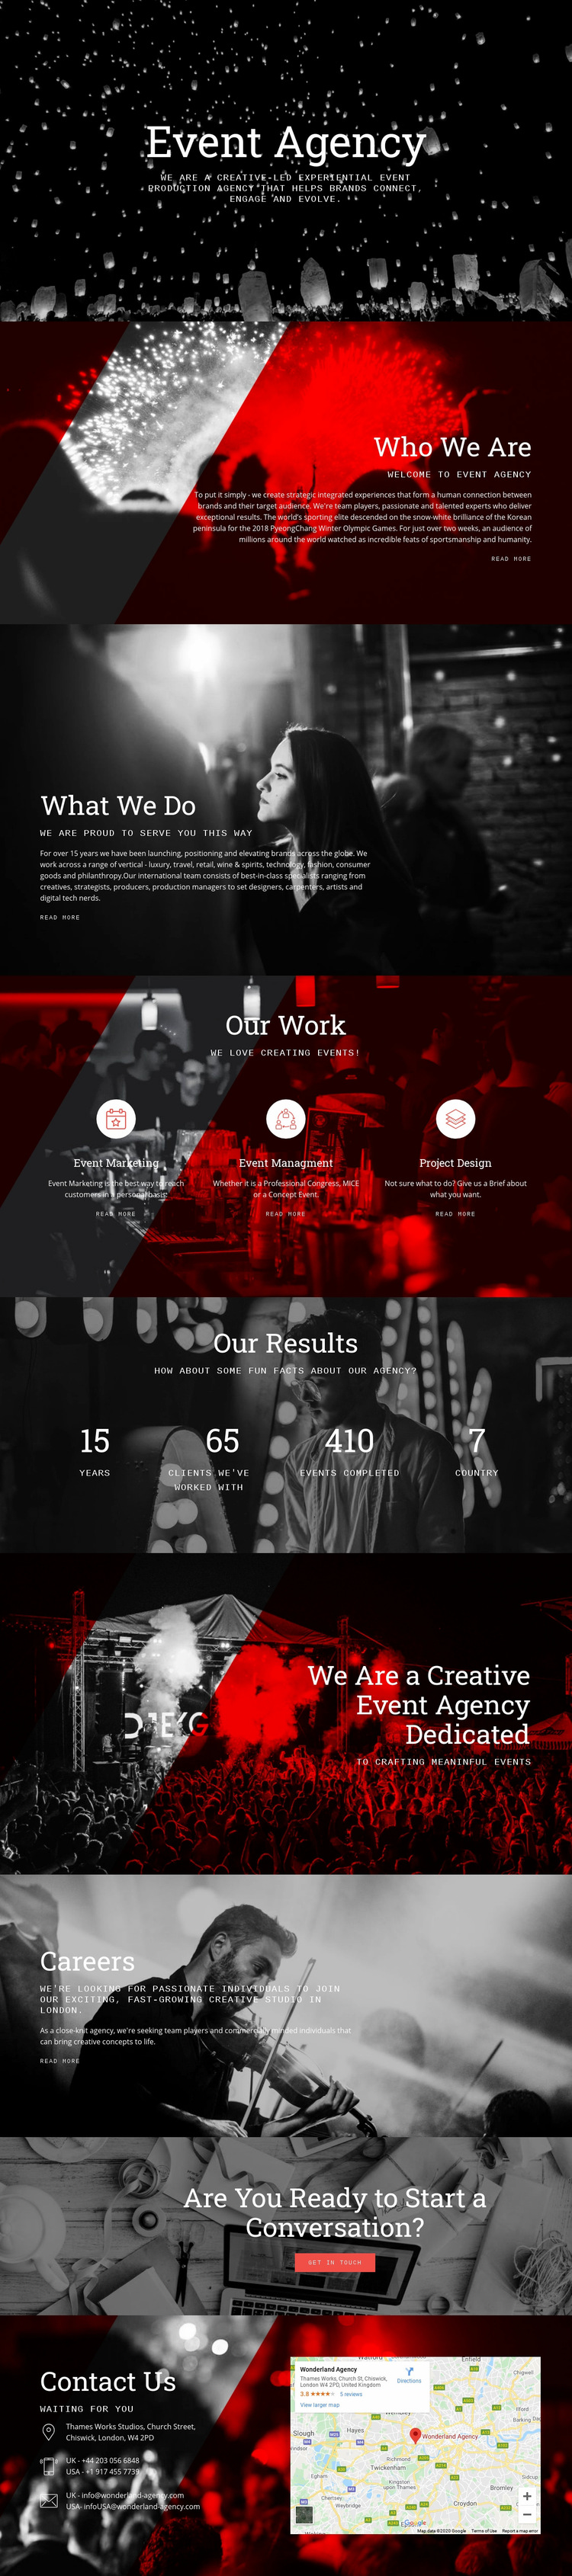 Event Agency Web Page Design